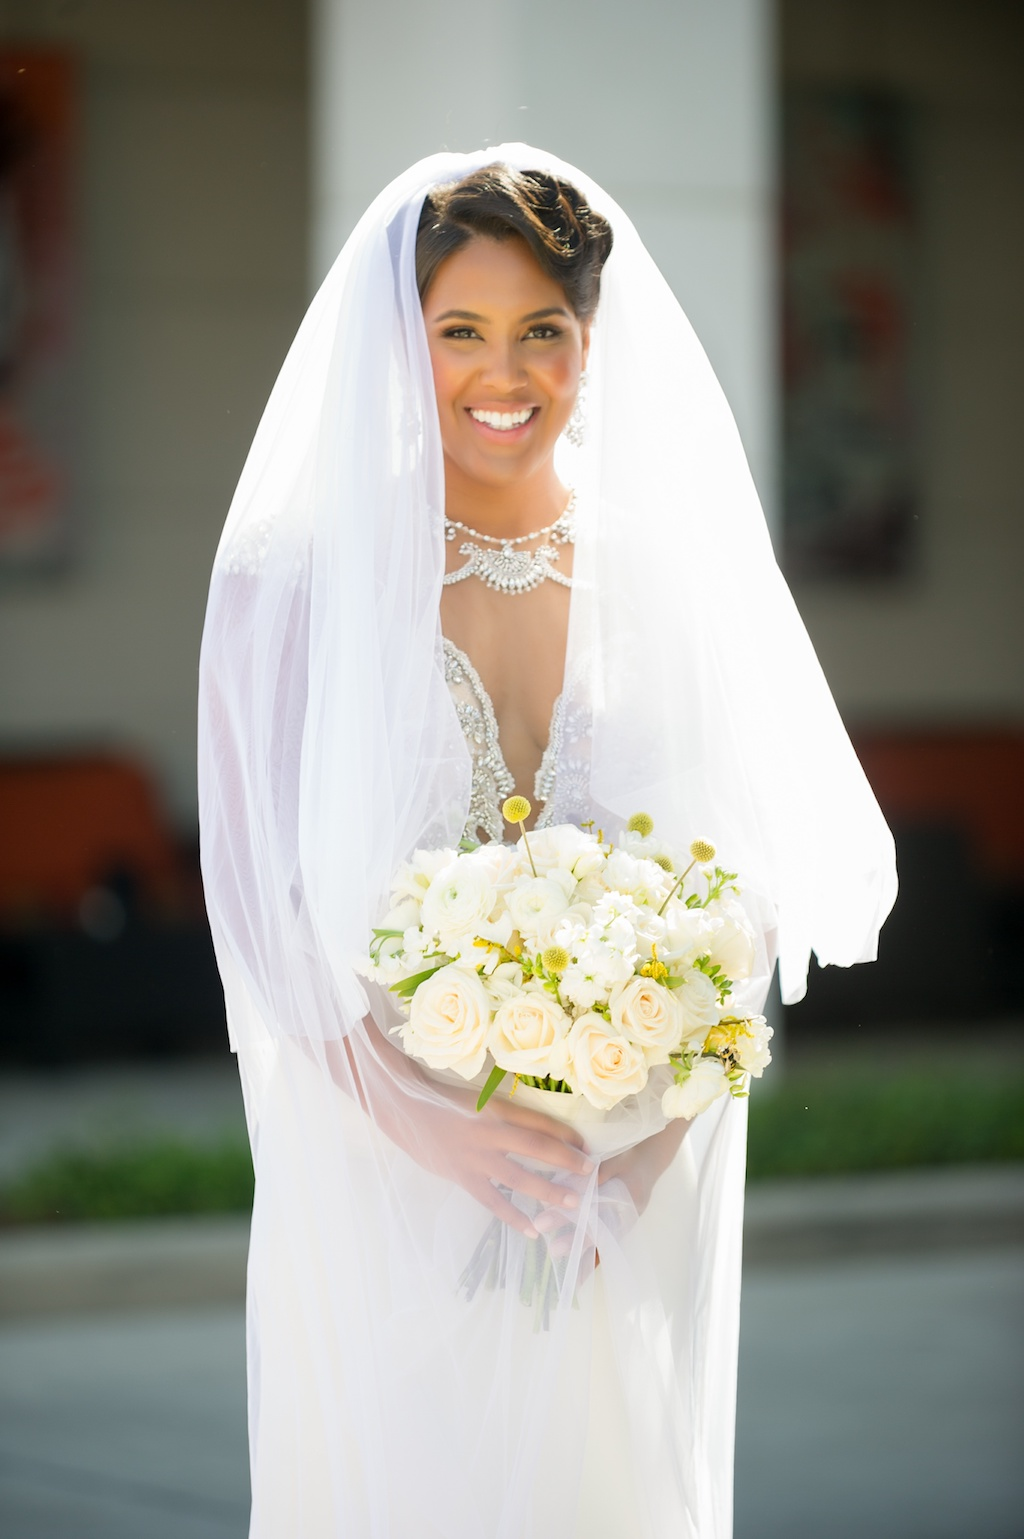 Modern, Elegant Florida Bridal Portrait, Bride in Long Veil, Holding Blush Pink, Ivory and White Floral Wedding Bouquet, Yellow Bumble Inspired Flowers, Historic Hyde Park in South Tampa   Tampa Bay Wedding Photographer Andi Diamond Photography